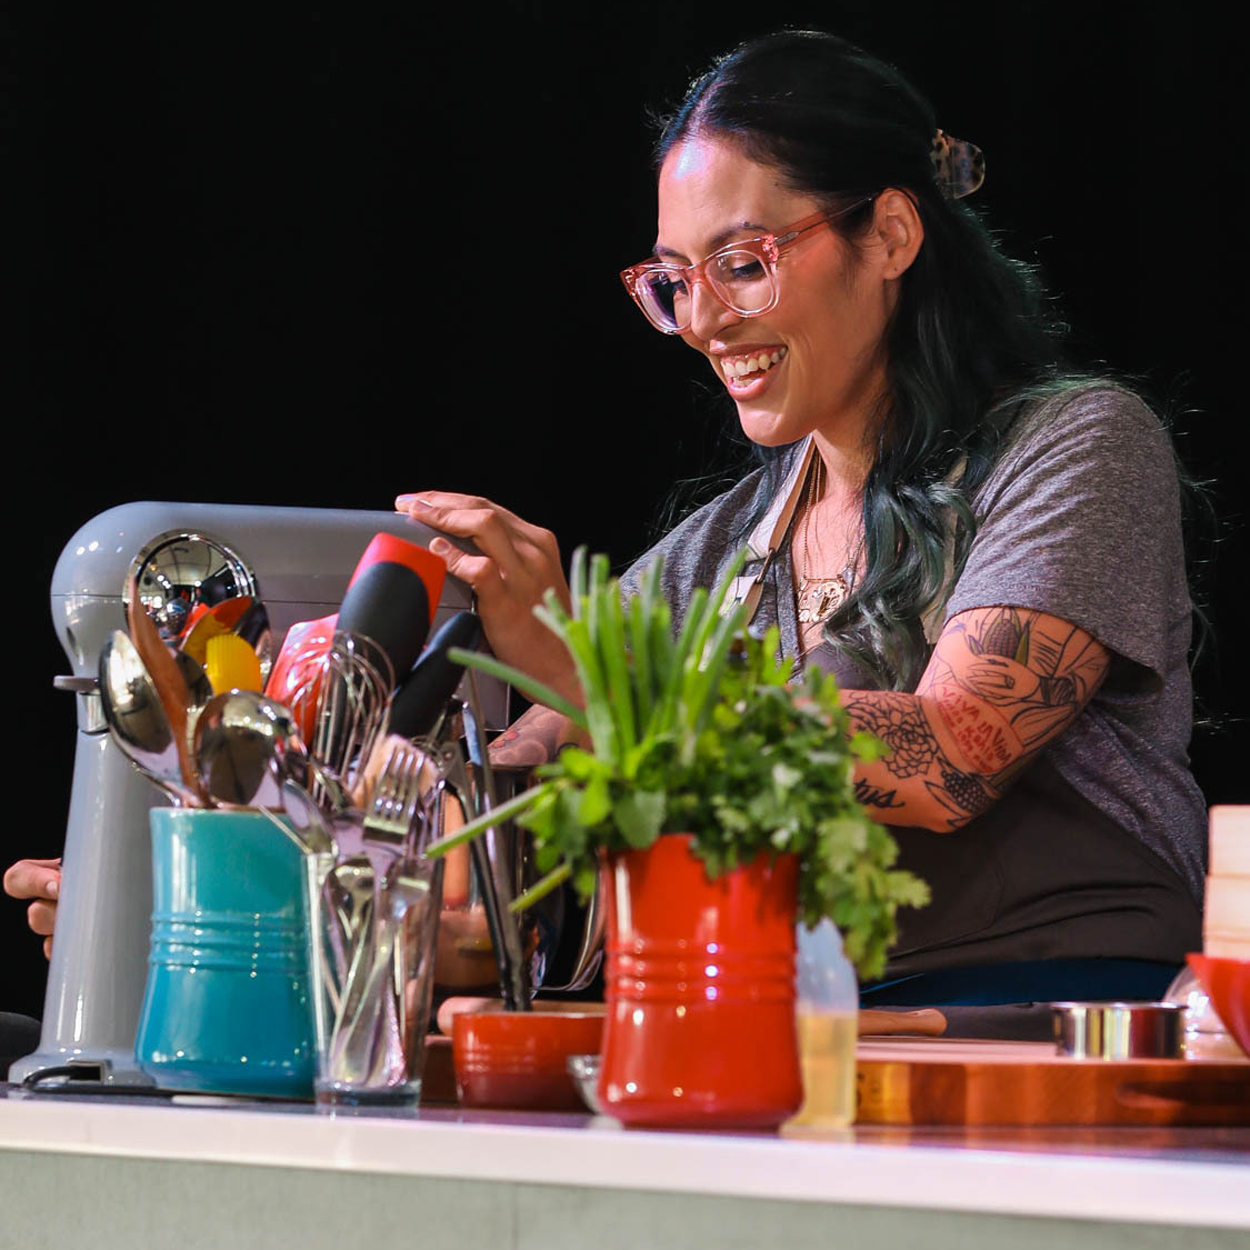 Claudette Zepeda cooking at the Food & Wine Classic in Aspen, 2021